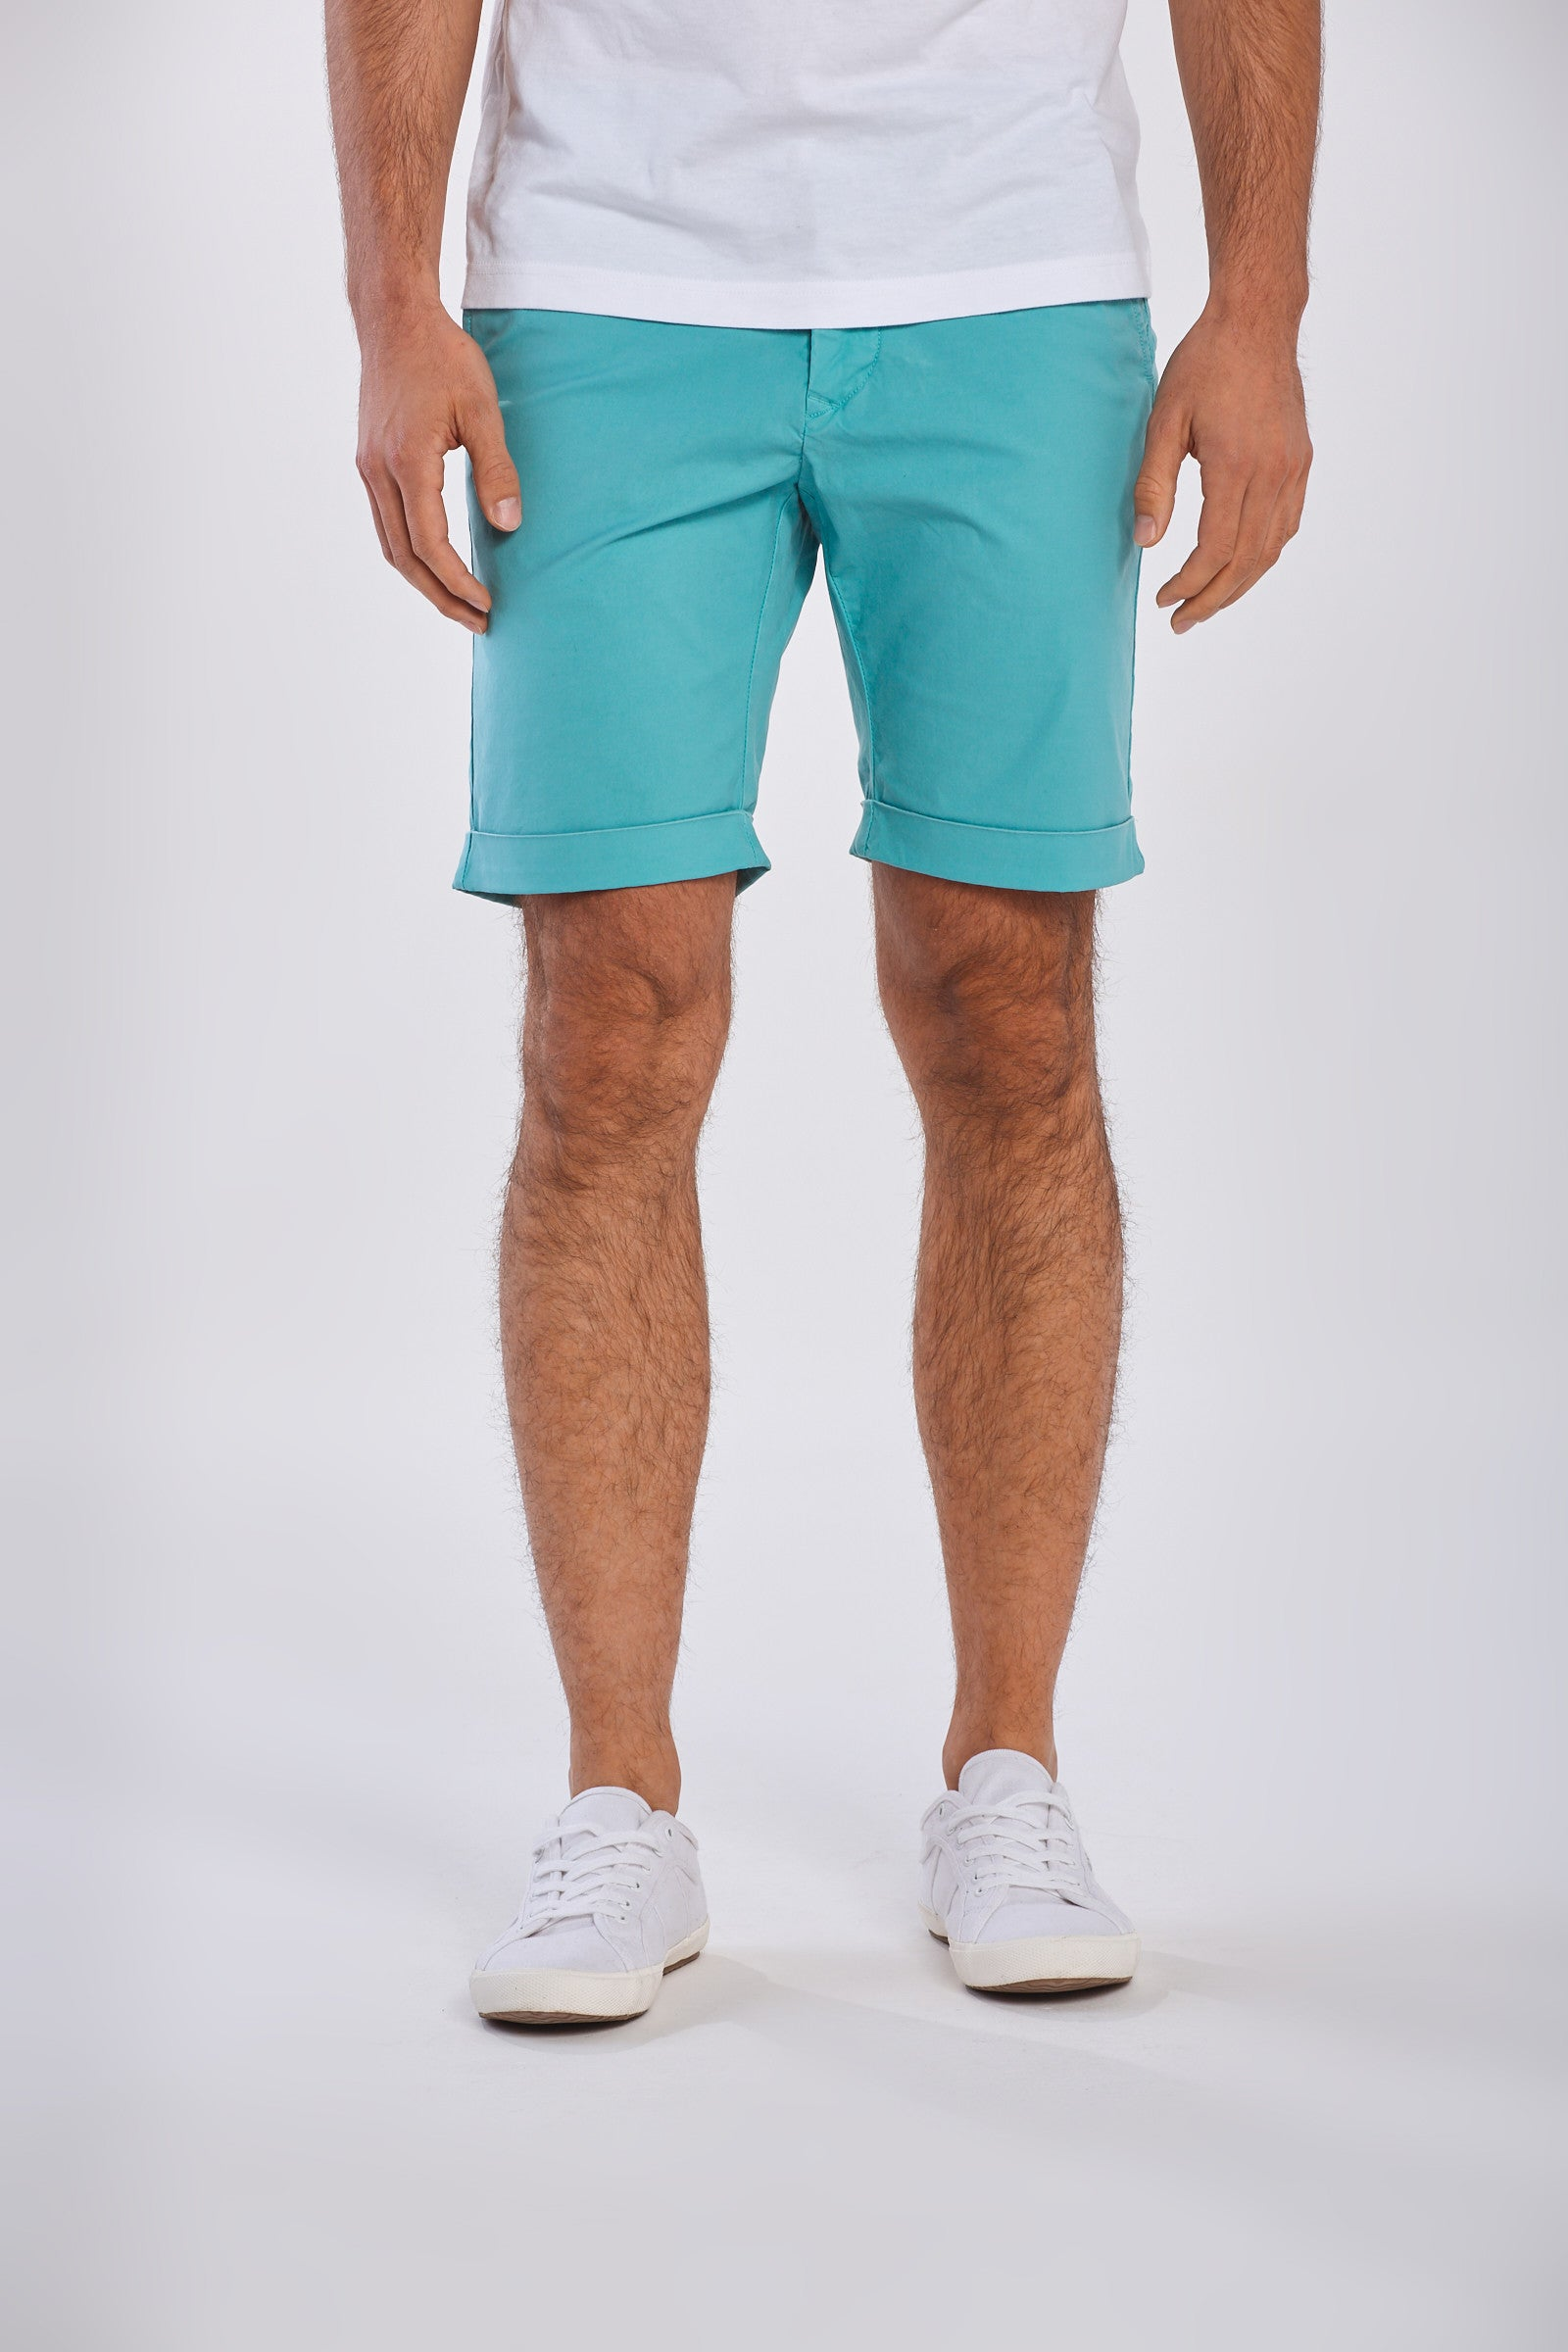 Gant - Regular Fit Sunfaded Shorts in Aqua